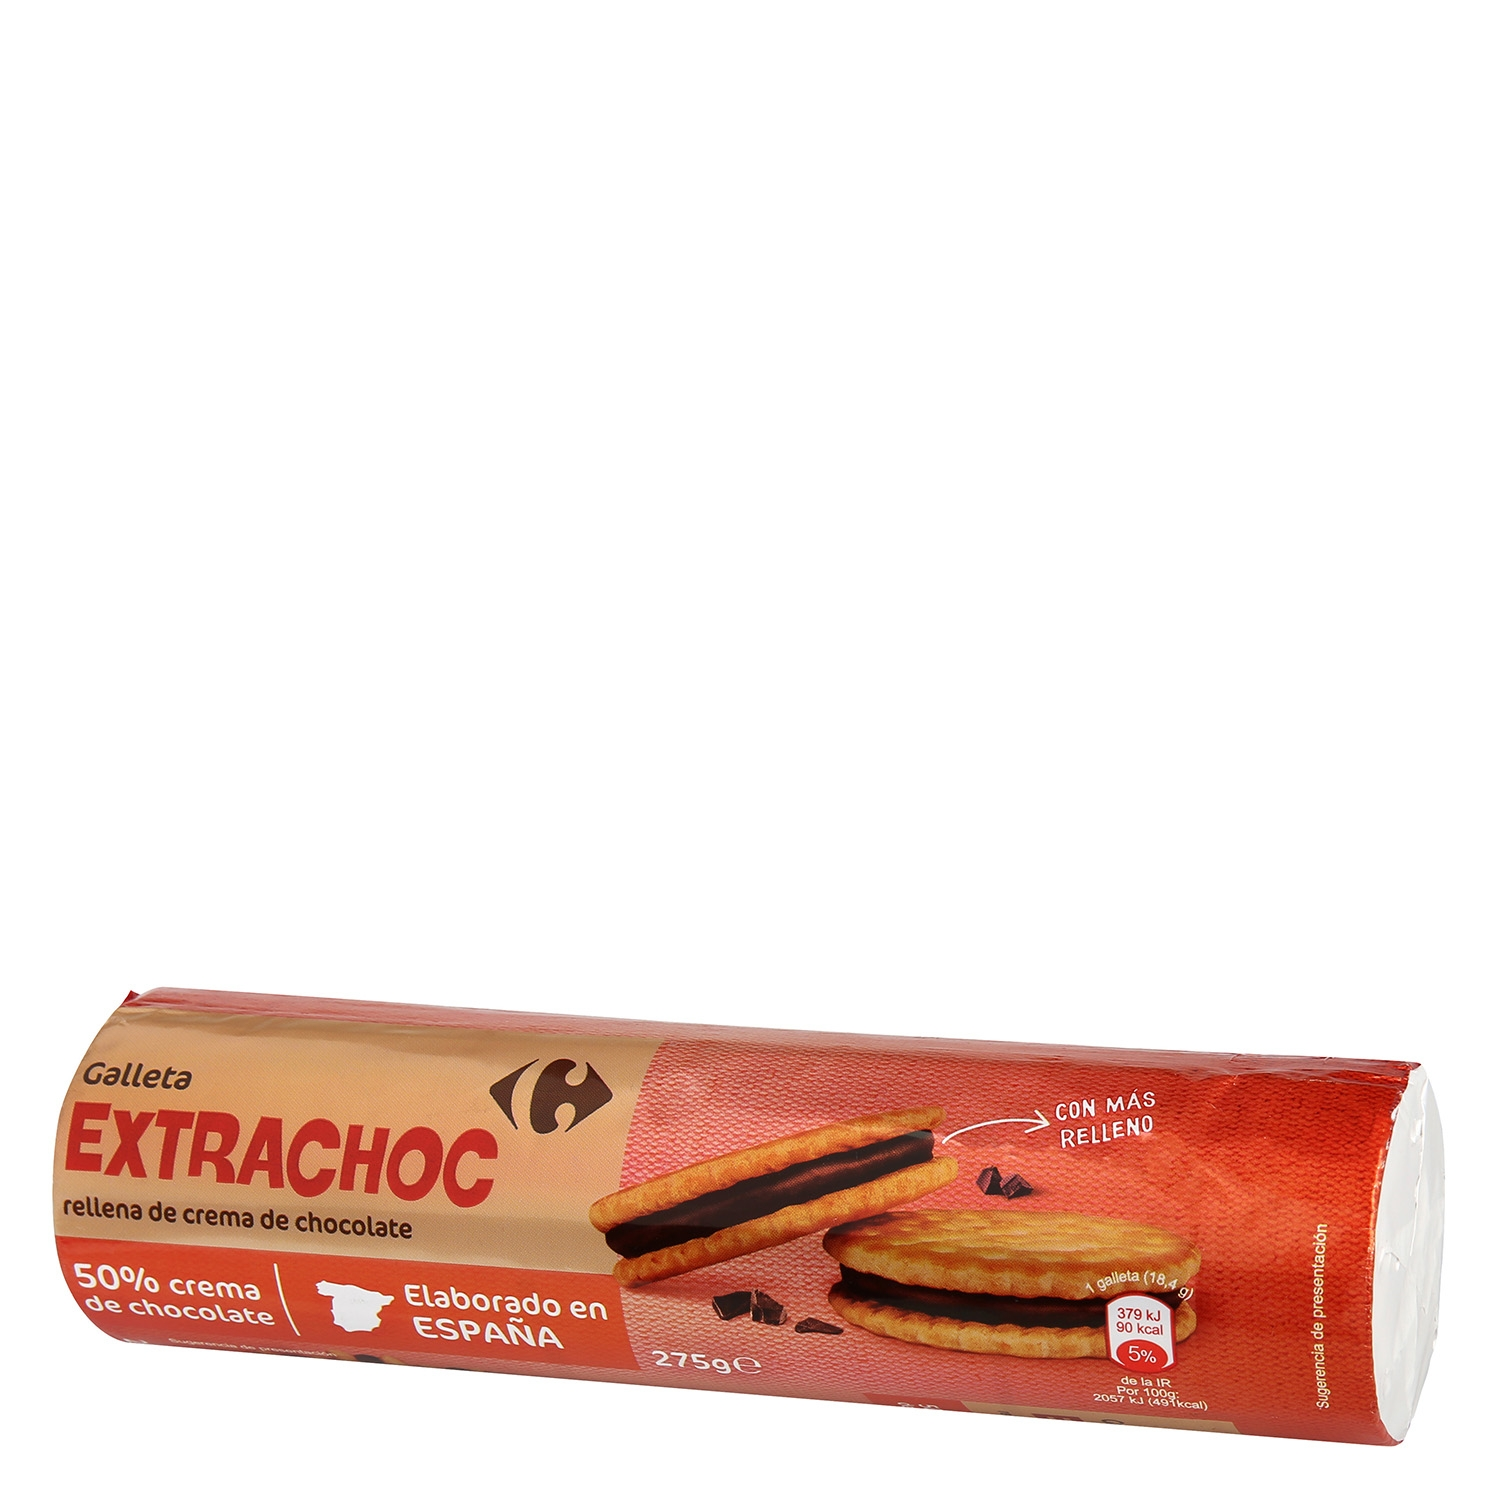 Galletas rellenas de crema de chocolate Carrefour 275 g. - 2